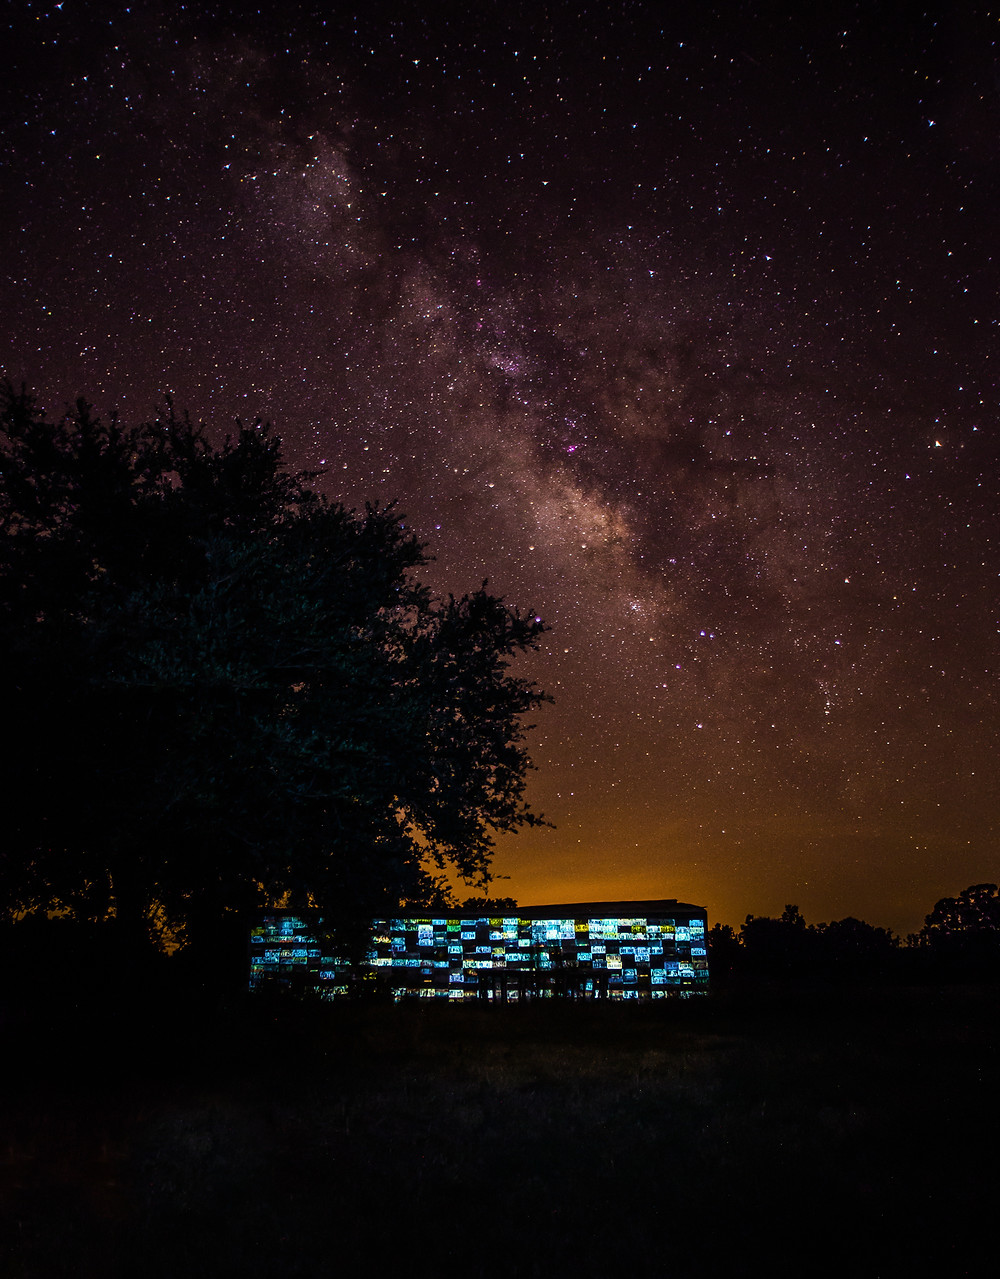 Milky Way/License Plate Barn f3, 20seconds, ISO 2000